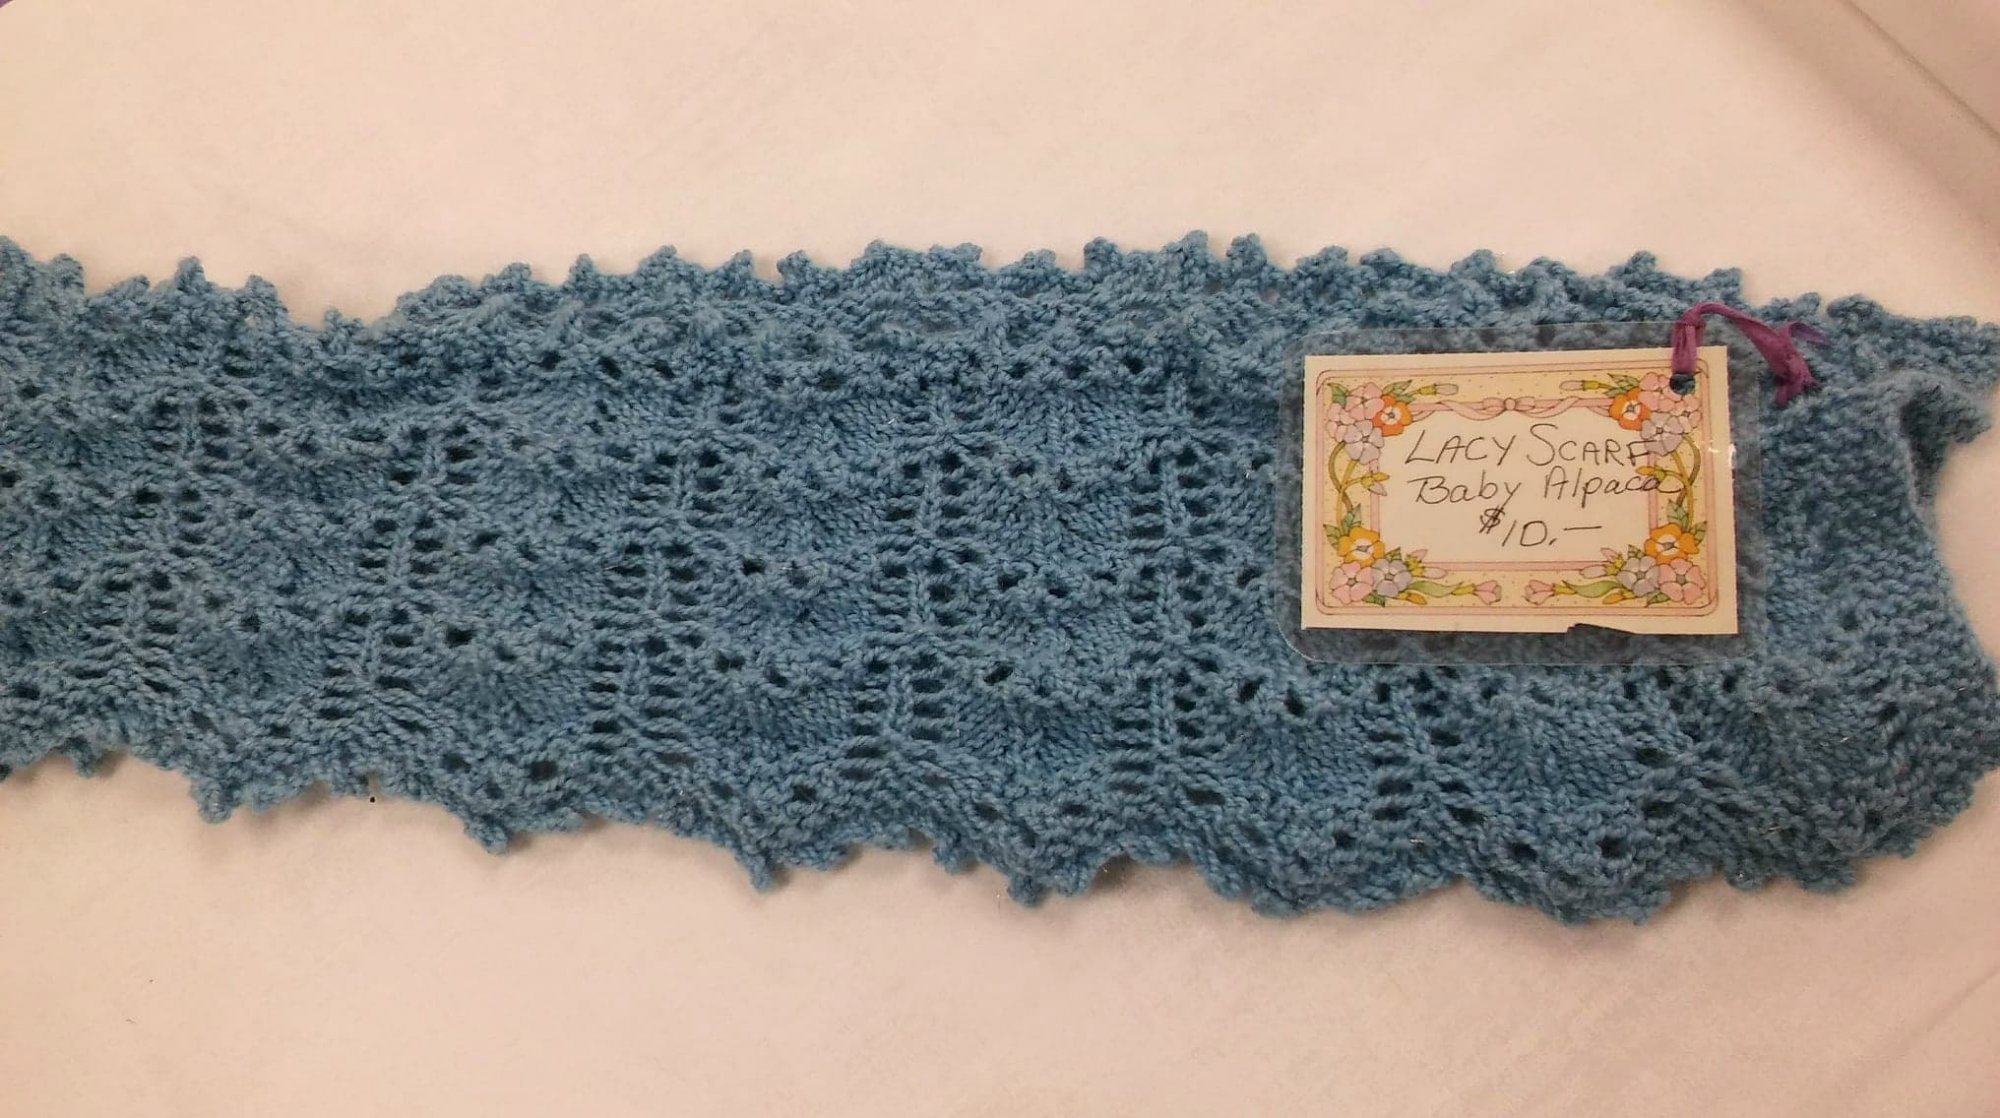 Lacy Scarf made with Baby Alpaca